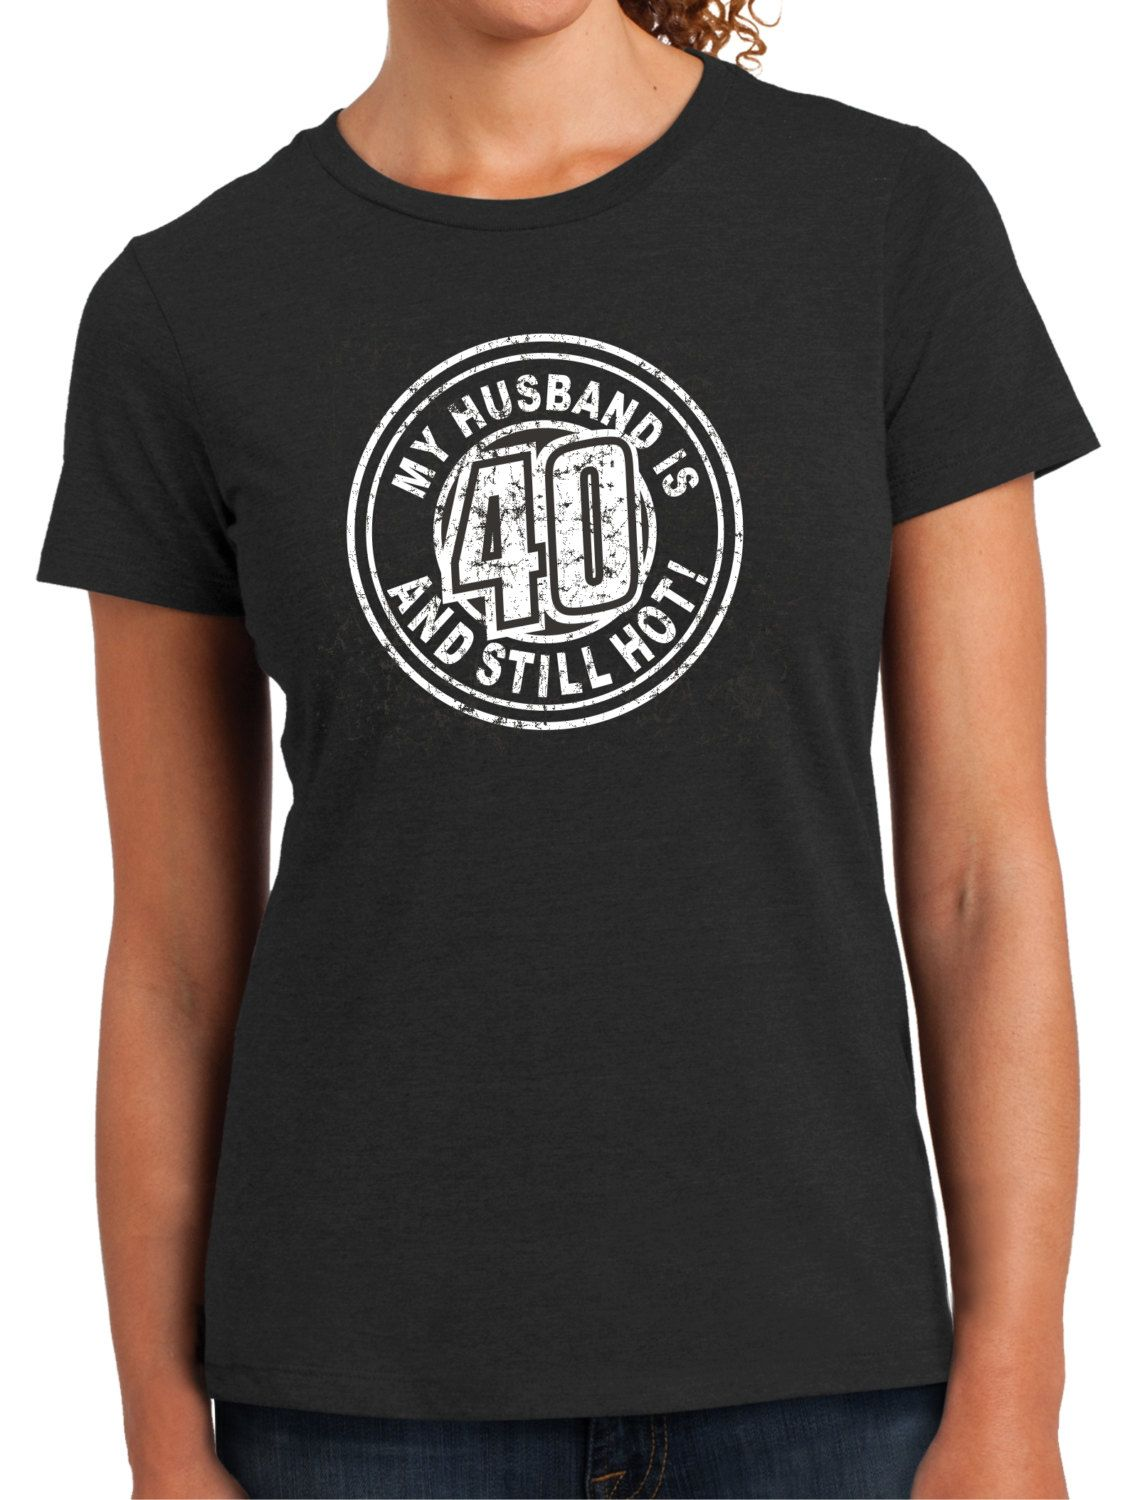 Husband Is Hot 40th Birthday Womens Top 40th Birthday Gift Fun